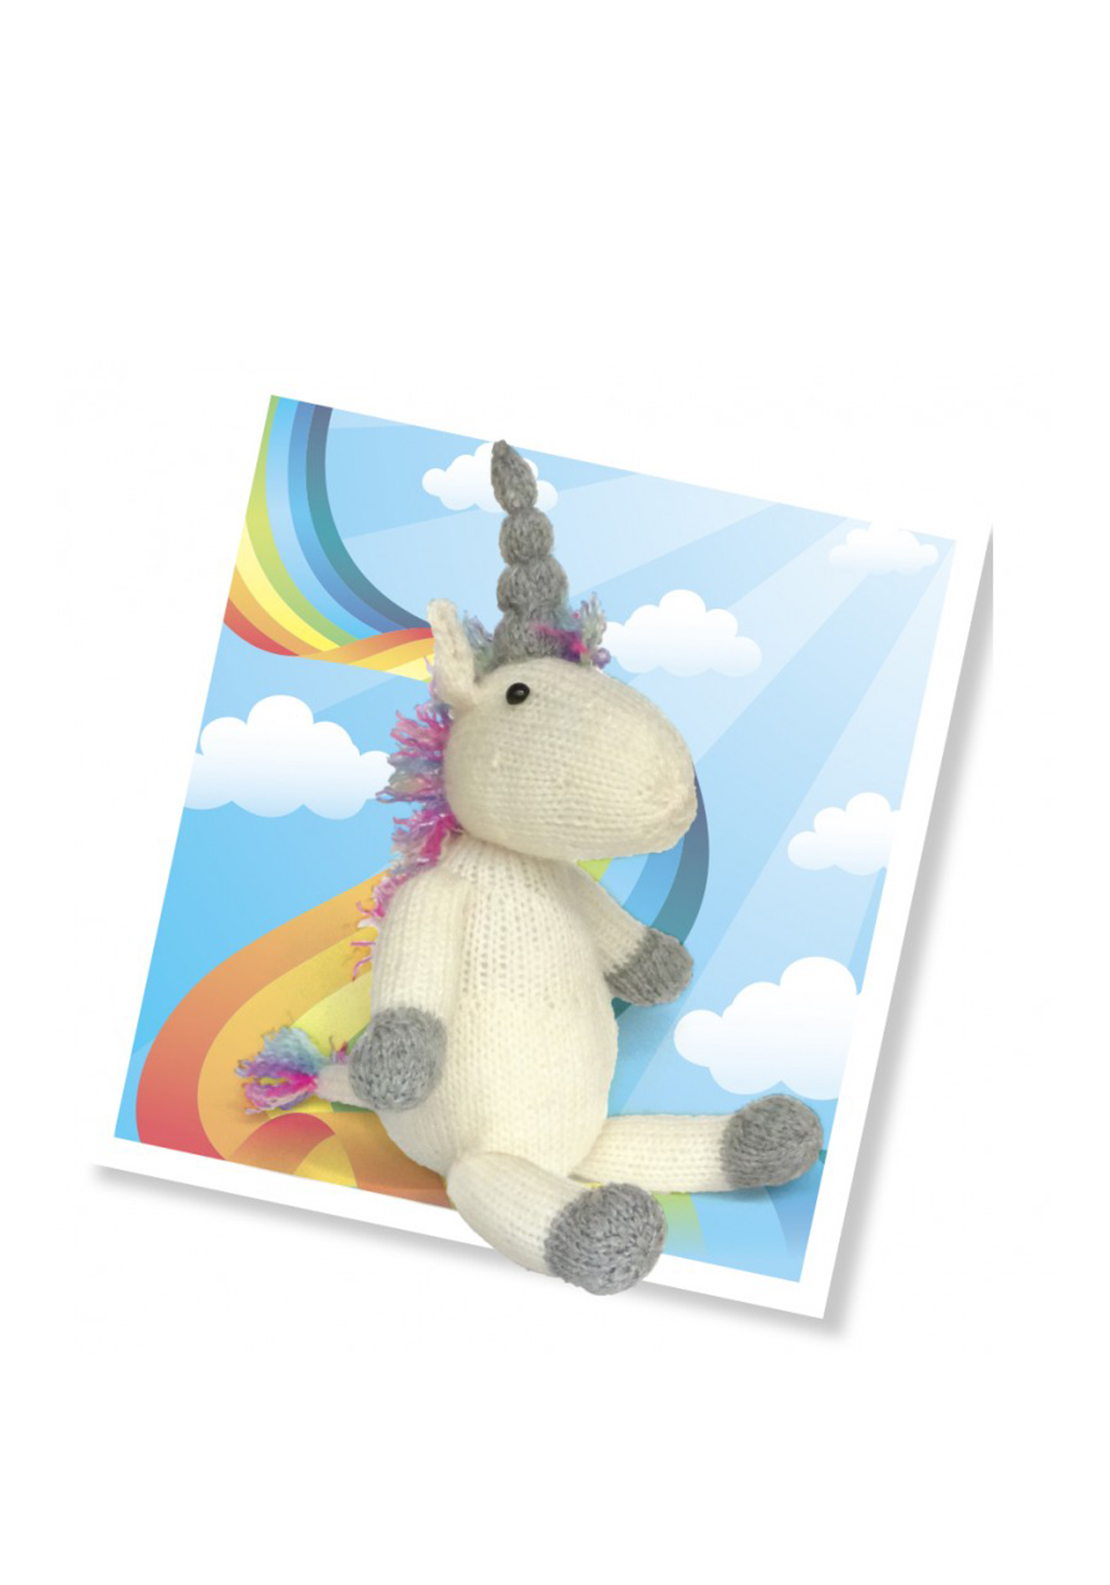 The Crafty Kit Co. Knit Your Own Unicorn Sewing Kit